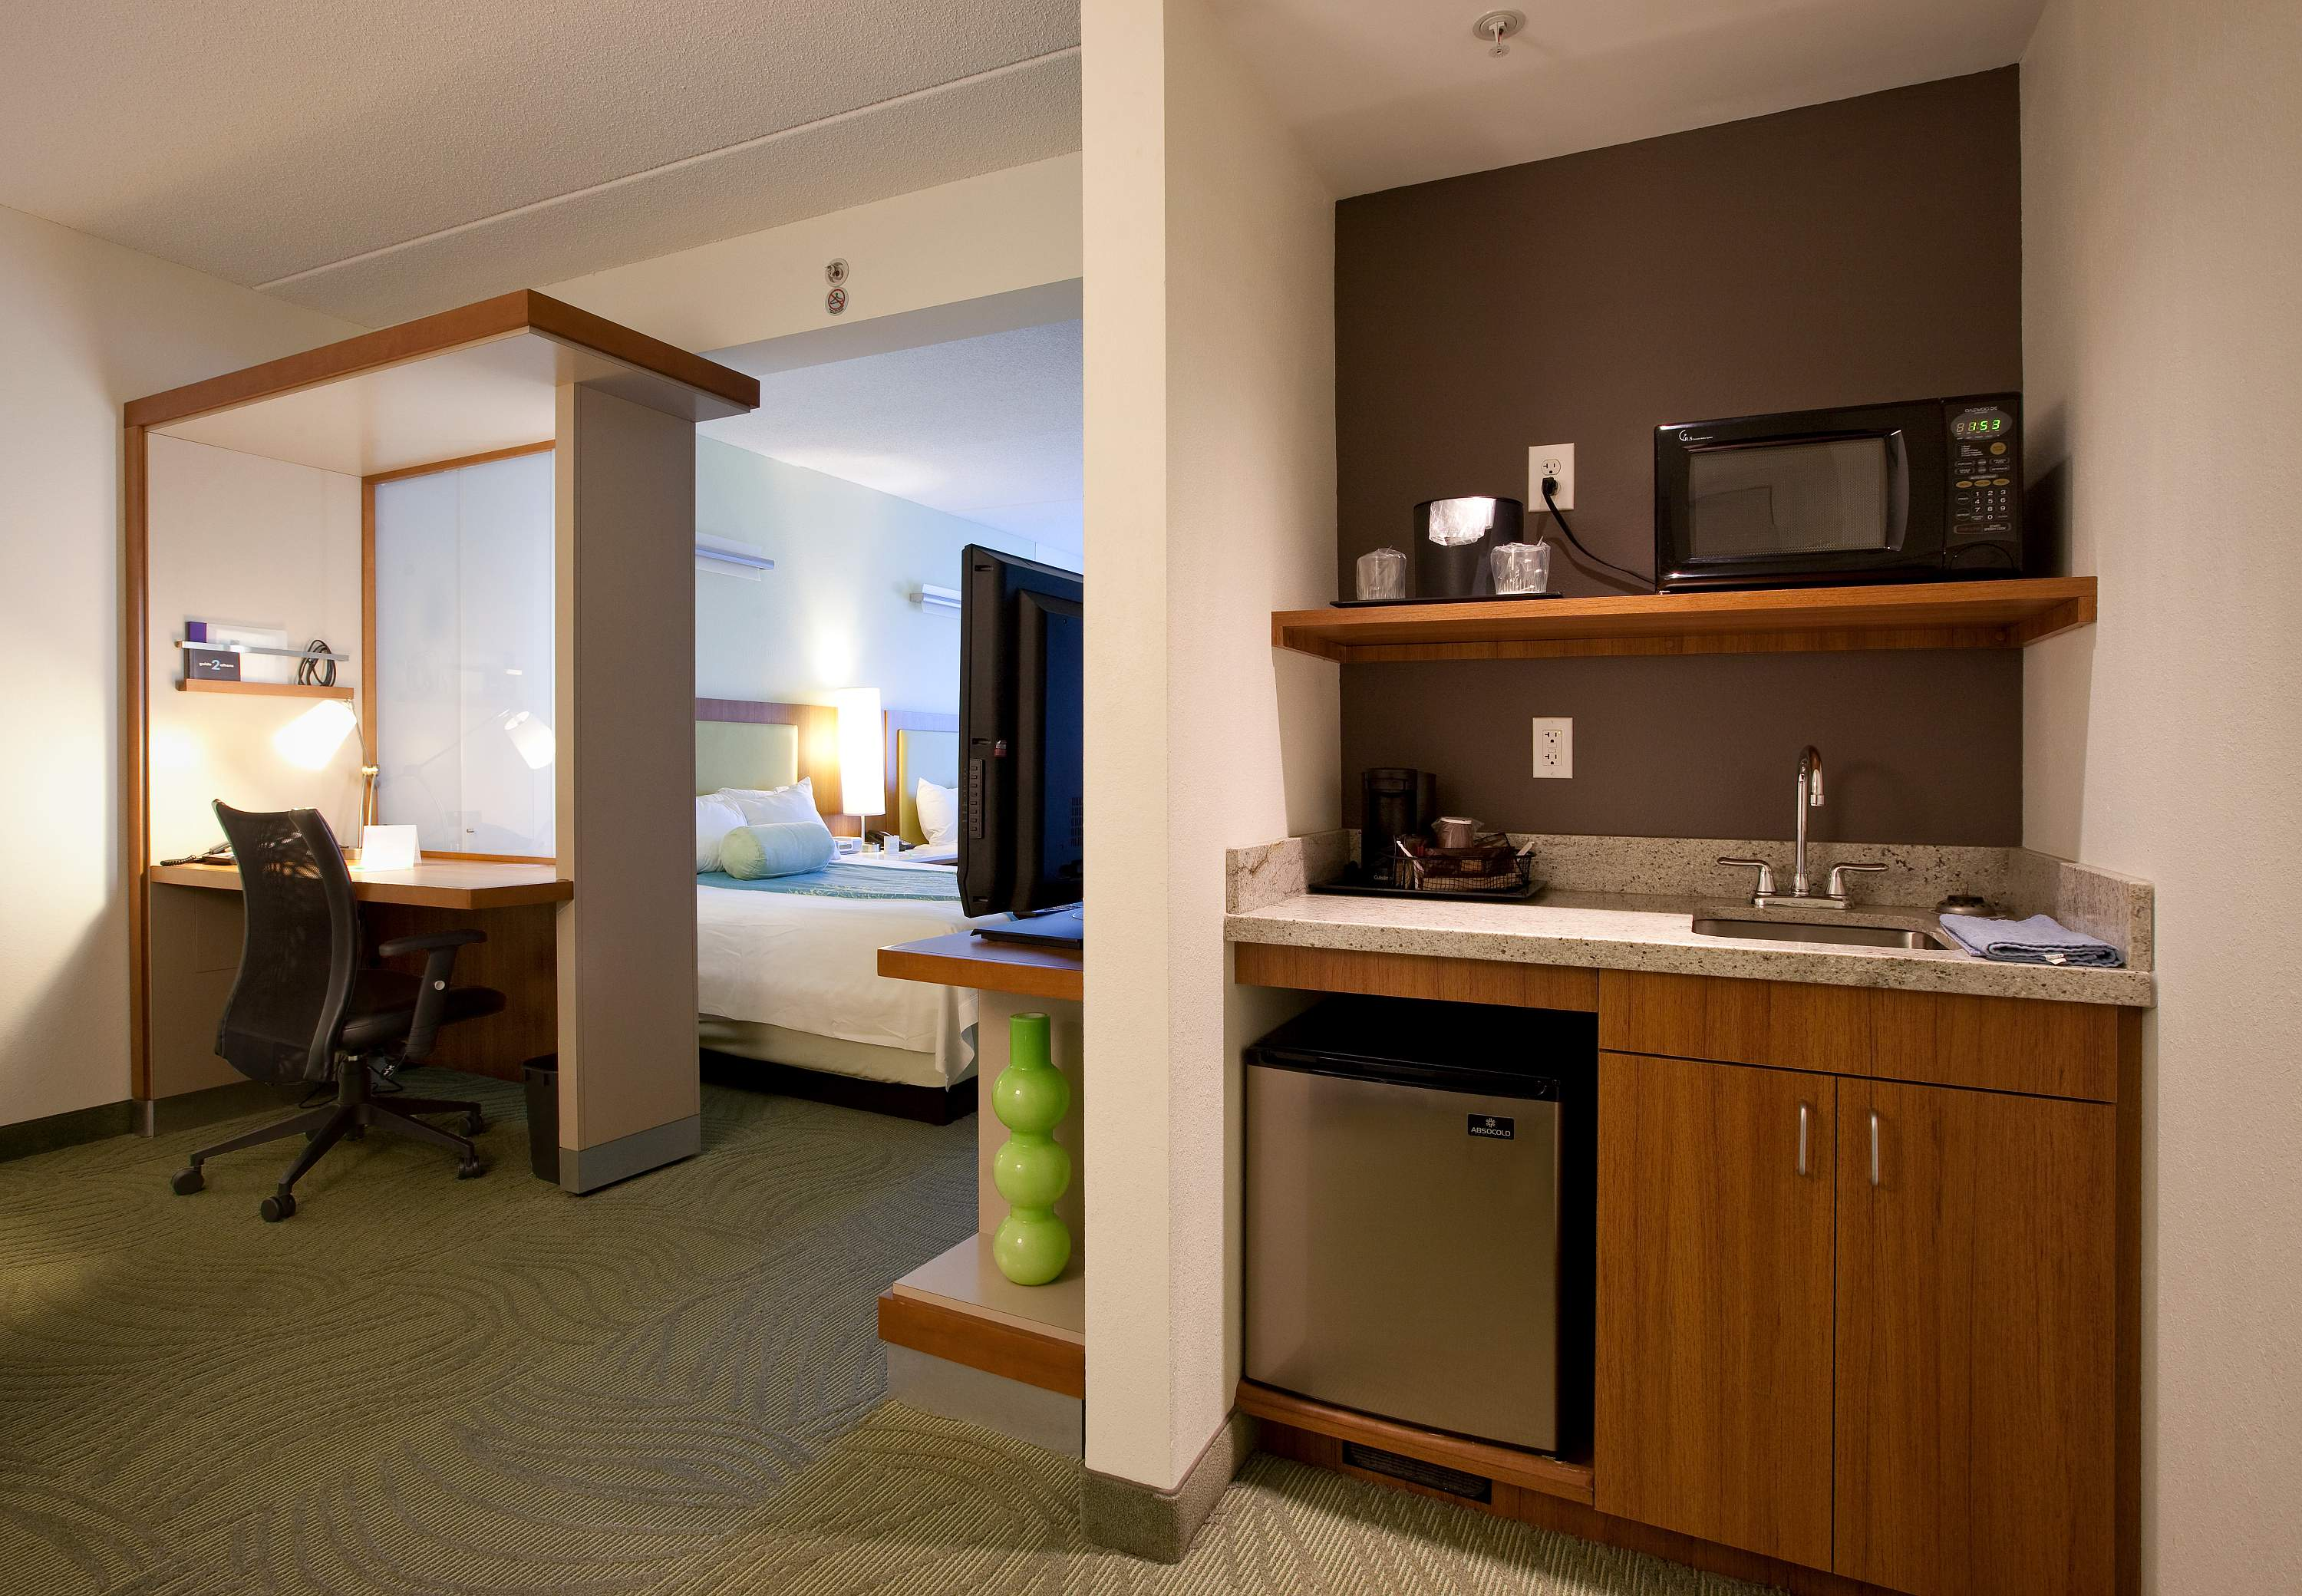 SpringHill Suites by Marriott Athens West image 6